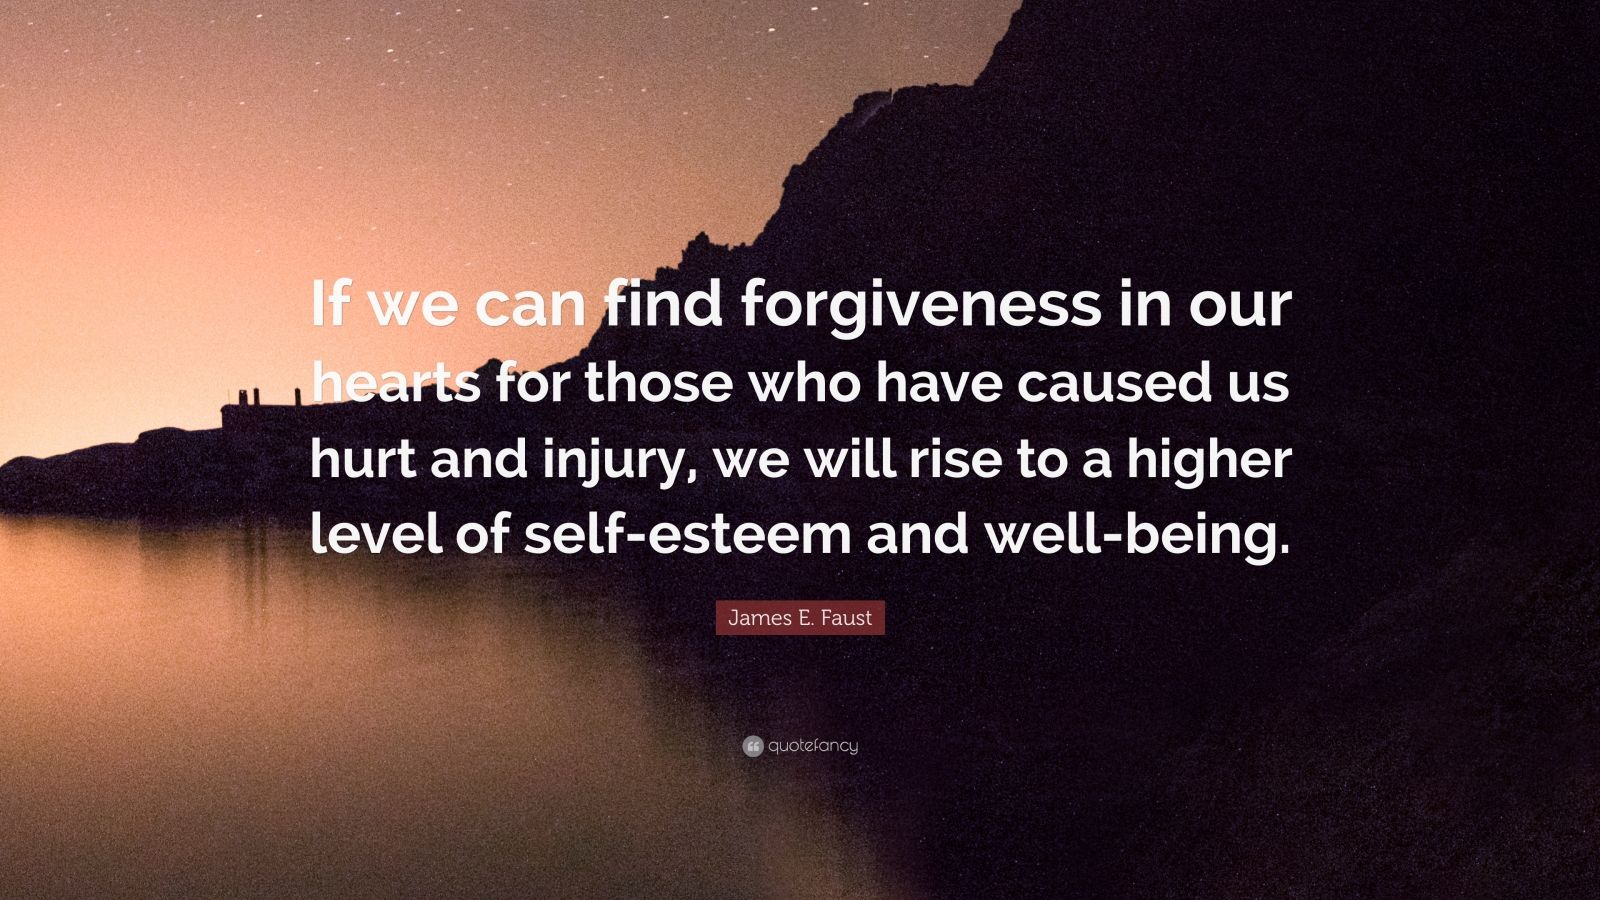 "James E. Faust Quote: ""If we can find forgiveness in our hearts for those who have caused us hurt and injury, we will rise to a higher level of self-esteem and well-being."""